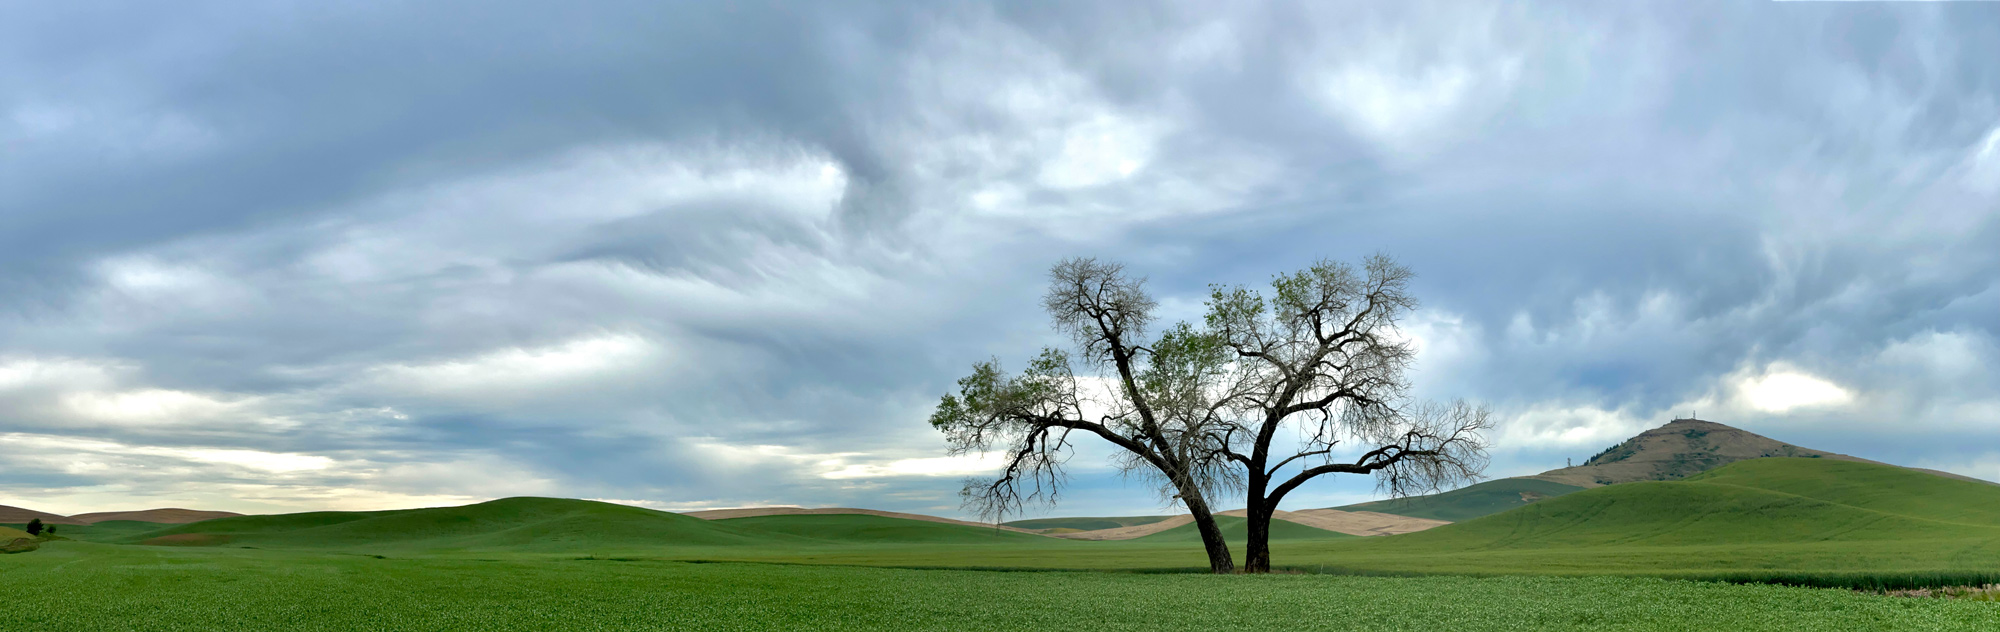 One of the many lone trees with Steptoe Butte in the background